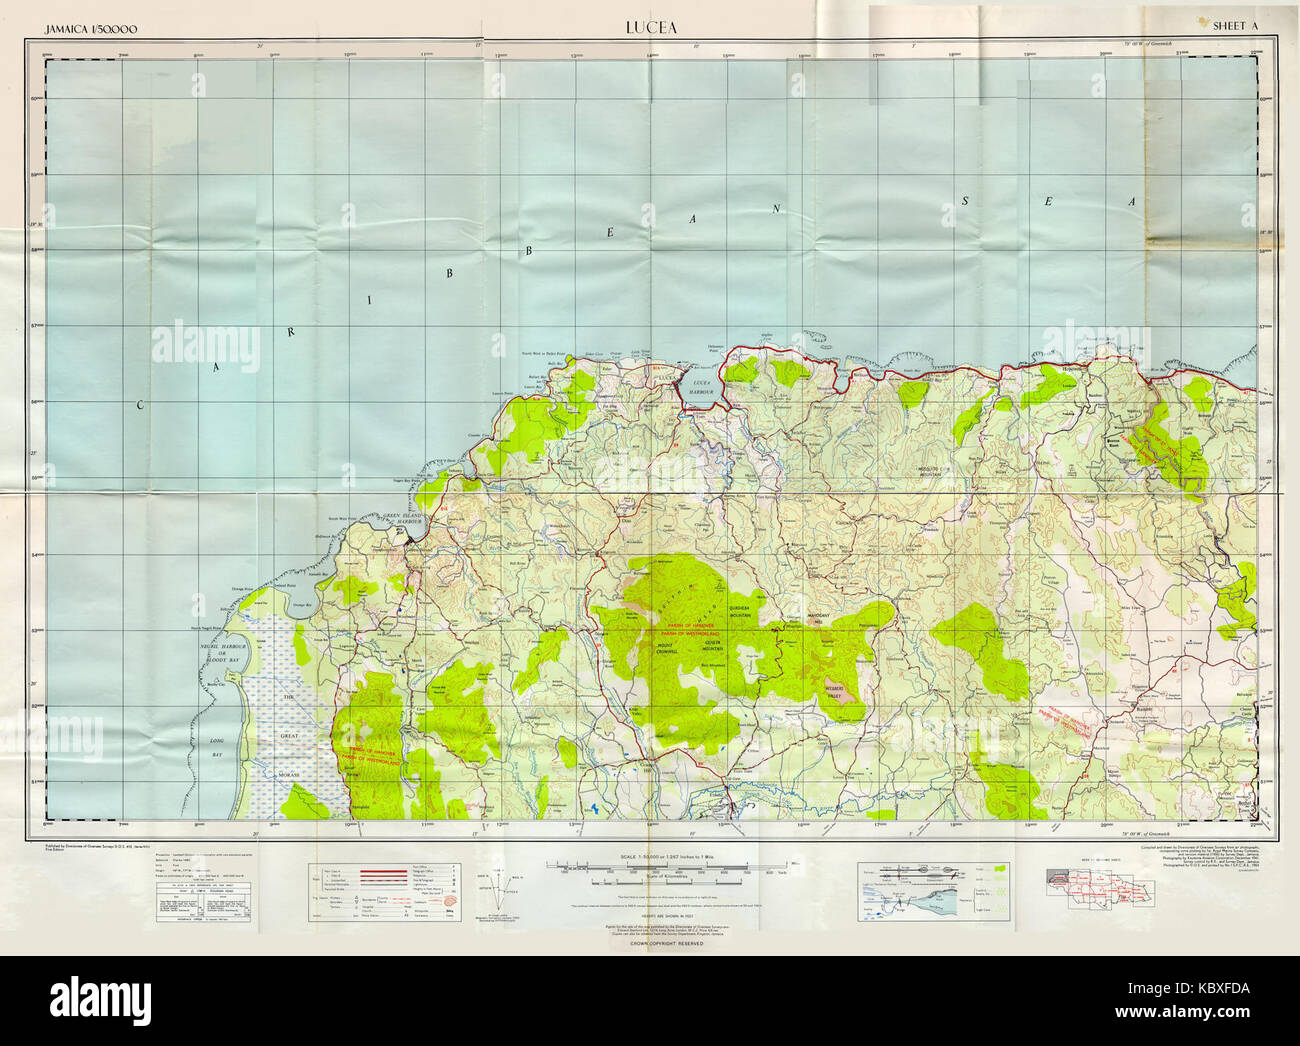 Ideas Map Of Jamaica Lucea On Emergingartspdxcom - Jamaica political map 1968